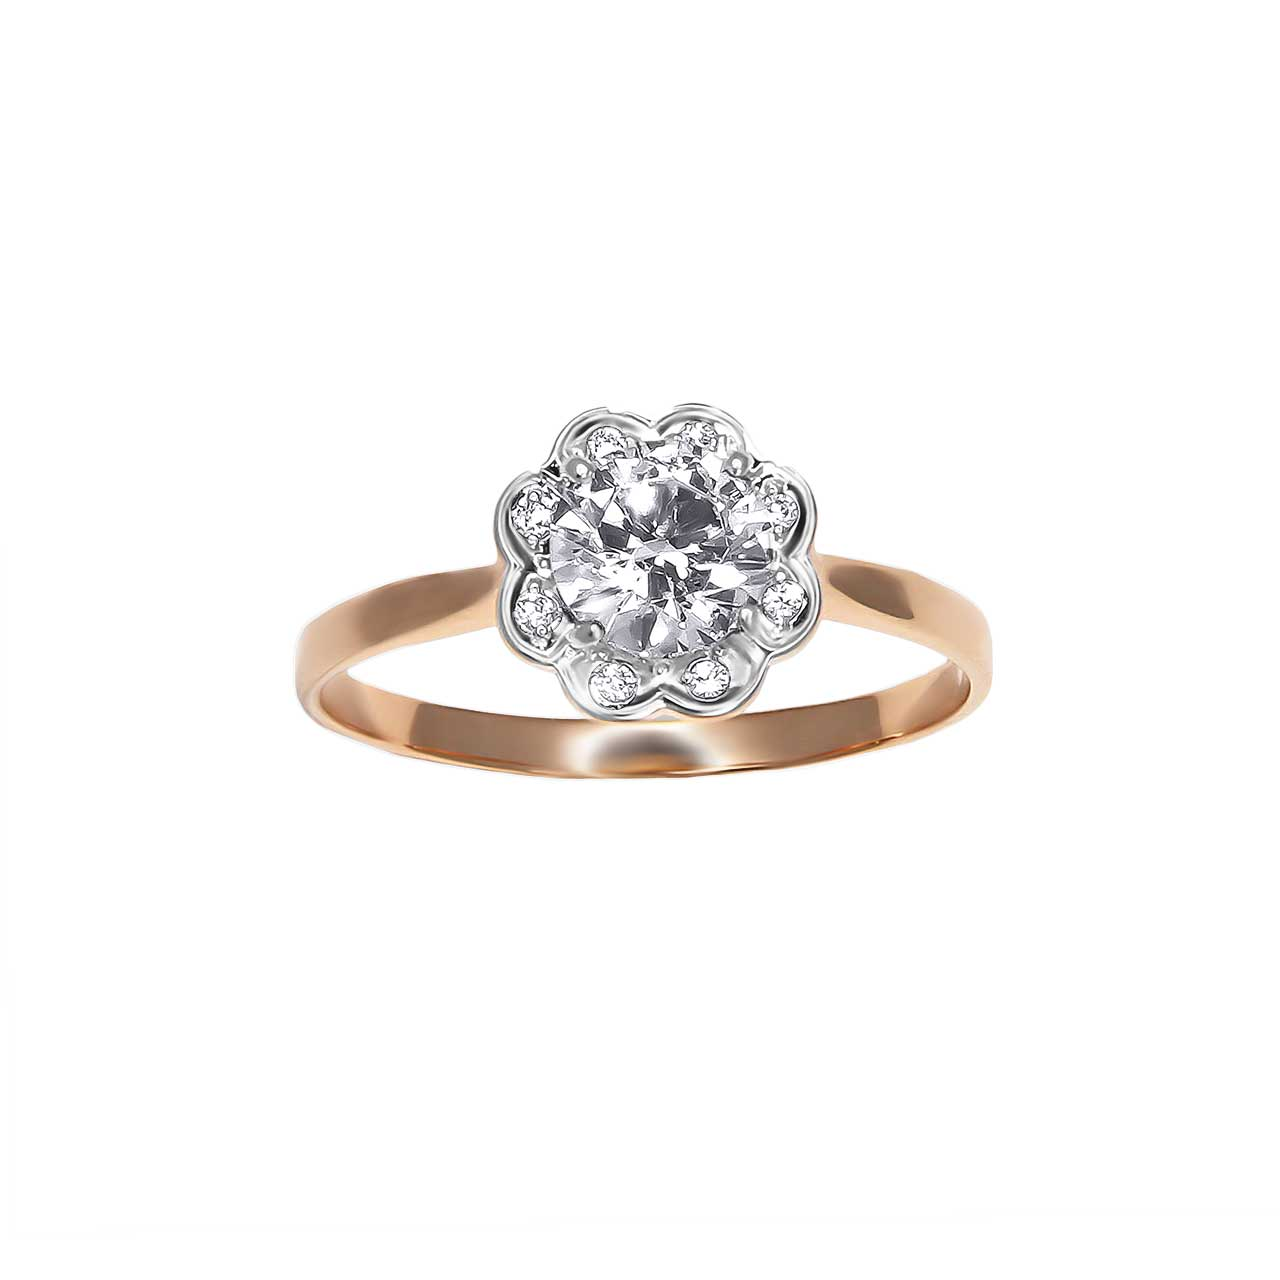 CZ floral engagement ring 2